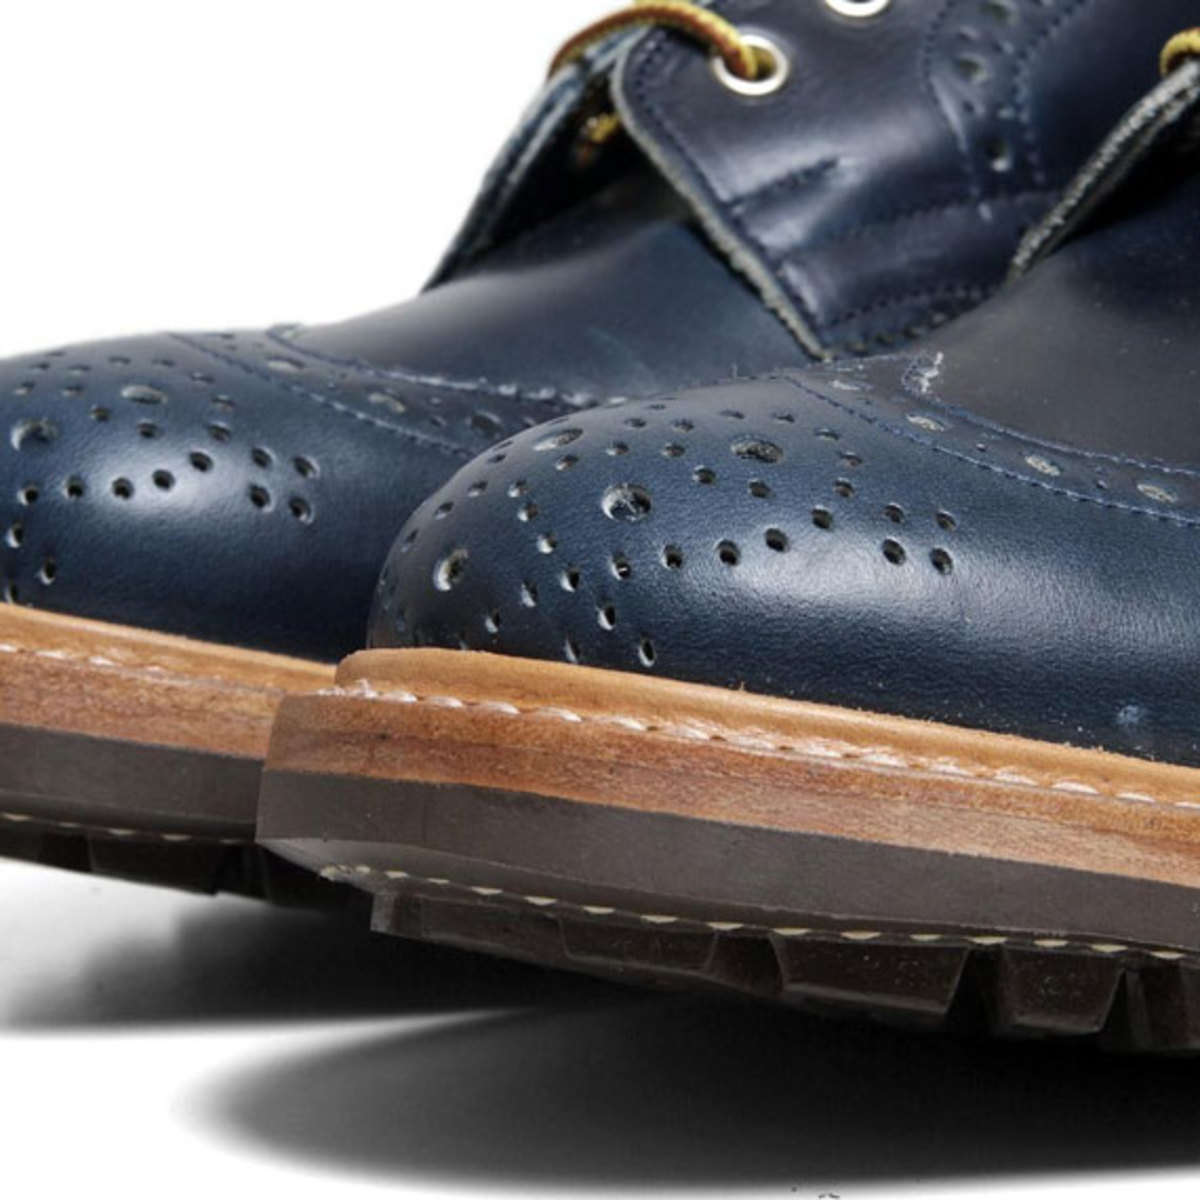 trickers-for-end-stow-brogue-derby-boot-06